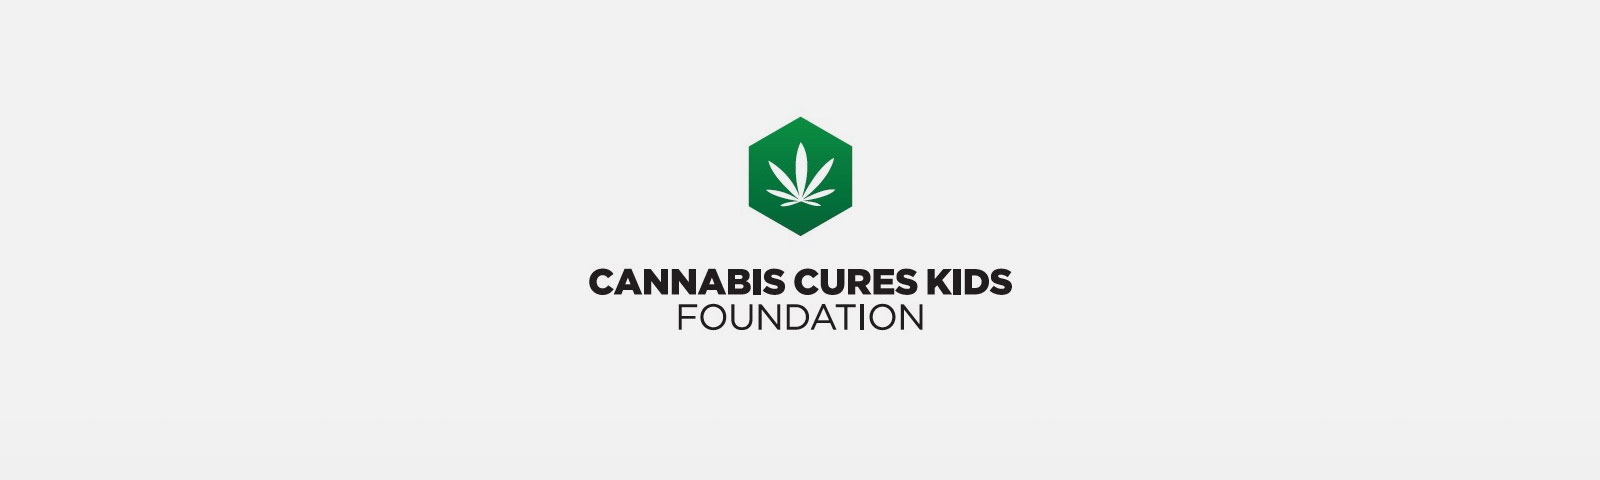 Cannabis Cures Kids